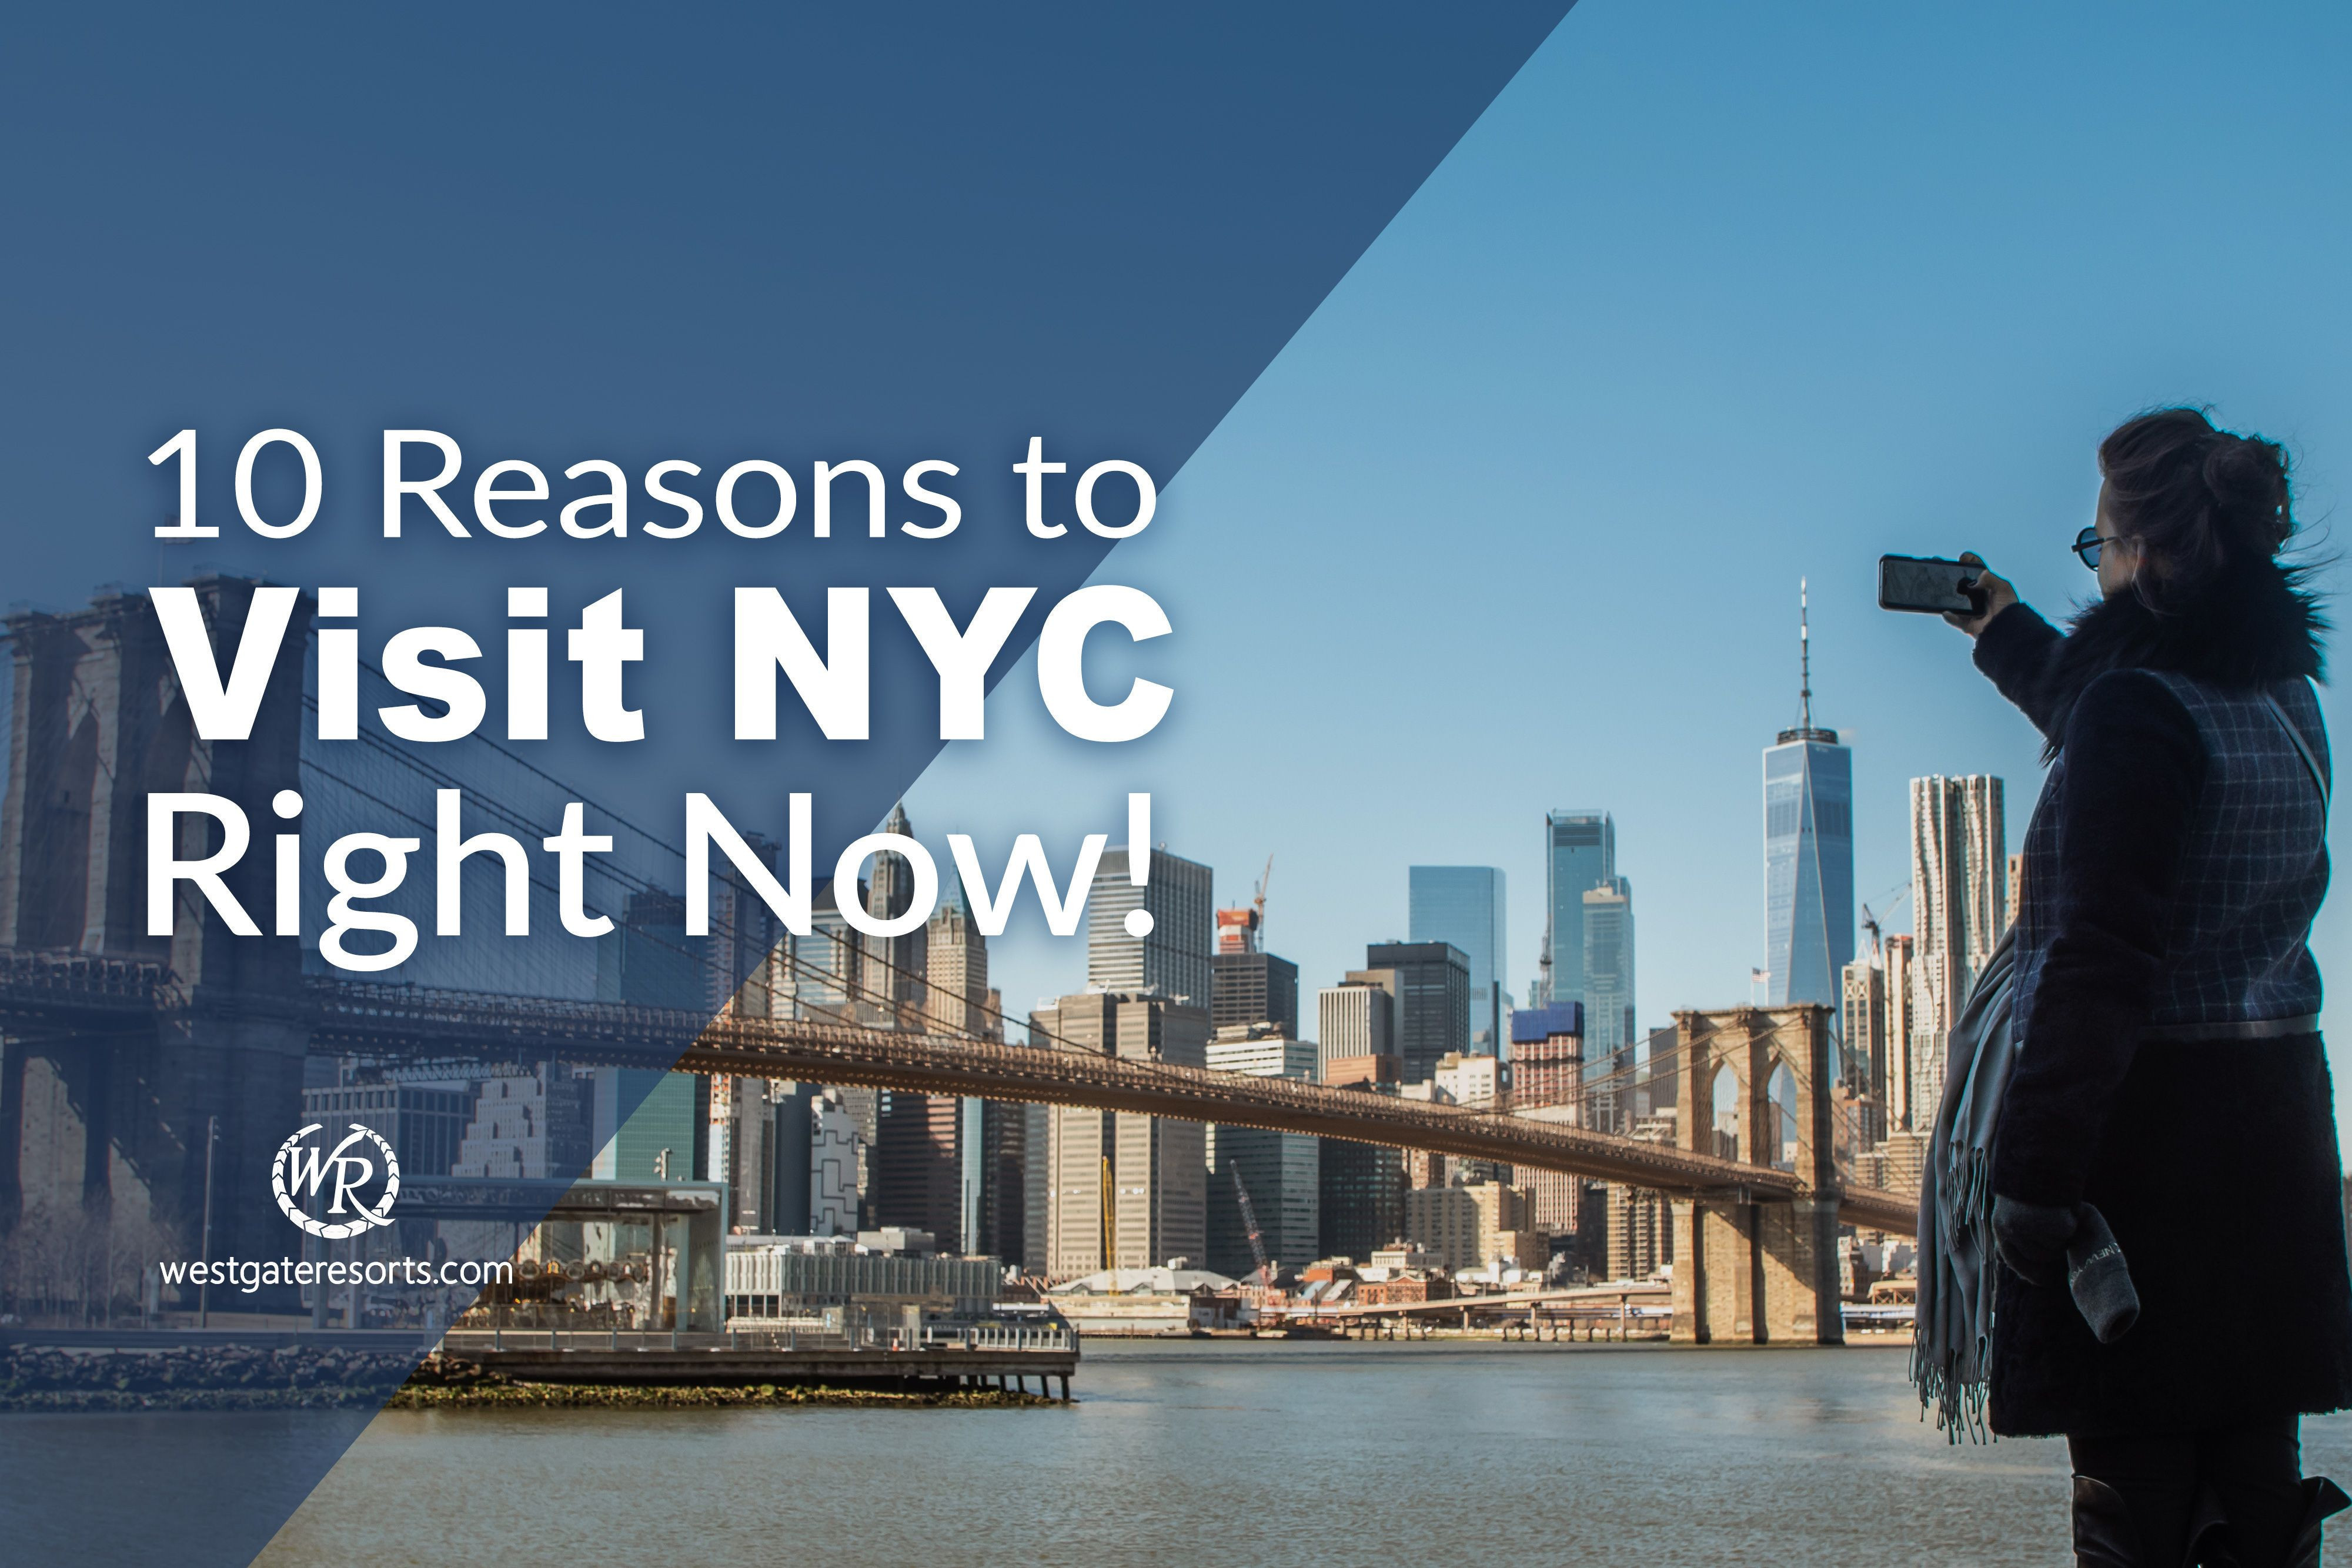 10 Reasons to Visit NYC Right Now!